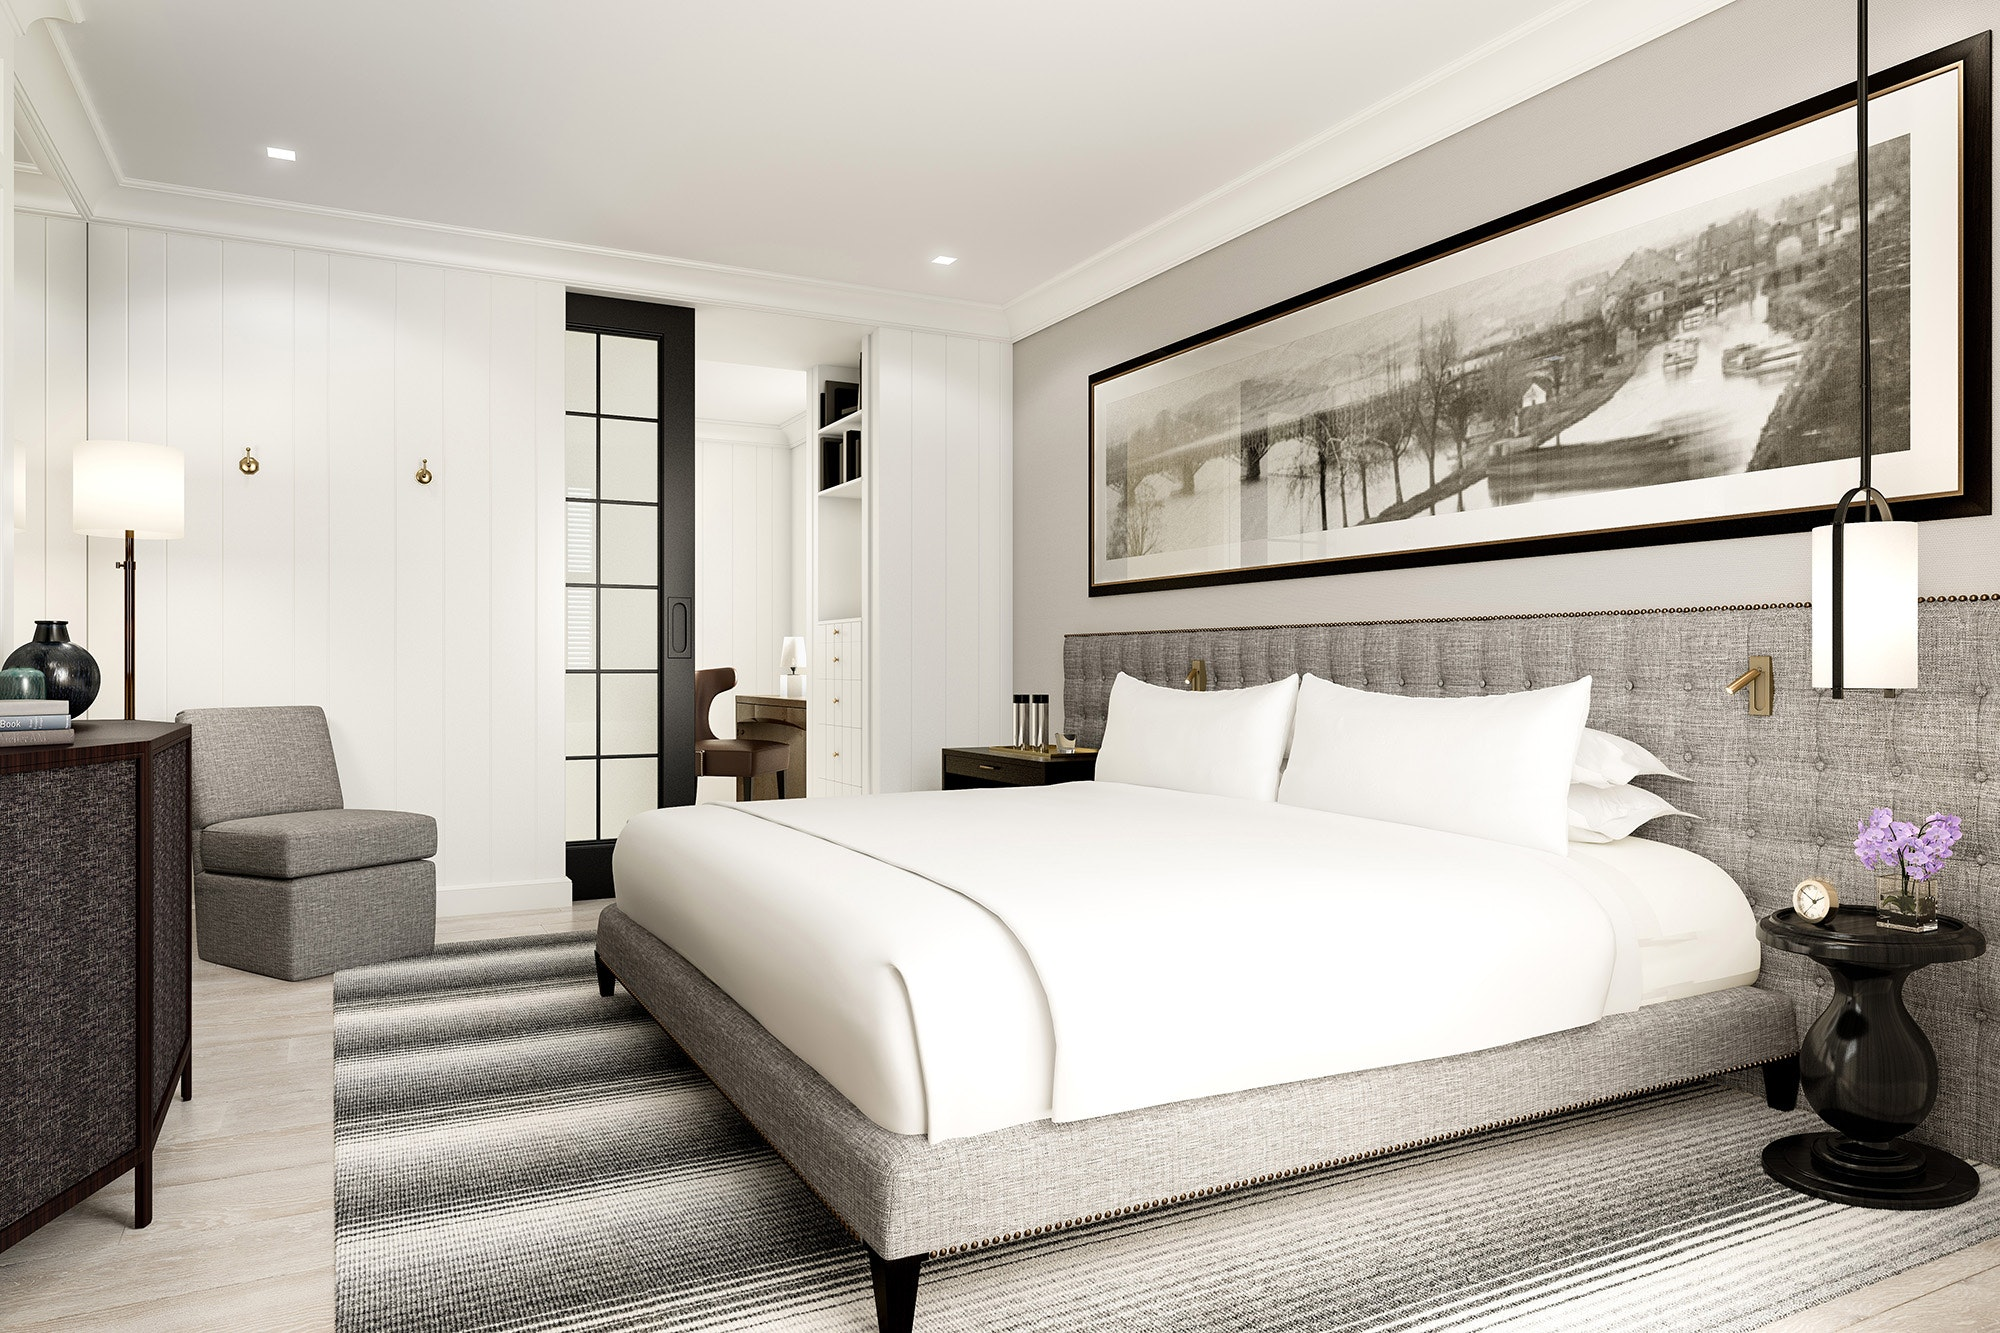 Inside a bedroom at one of the new townhouses at the Rosewood Washington, D.C.